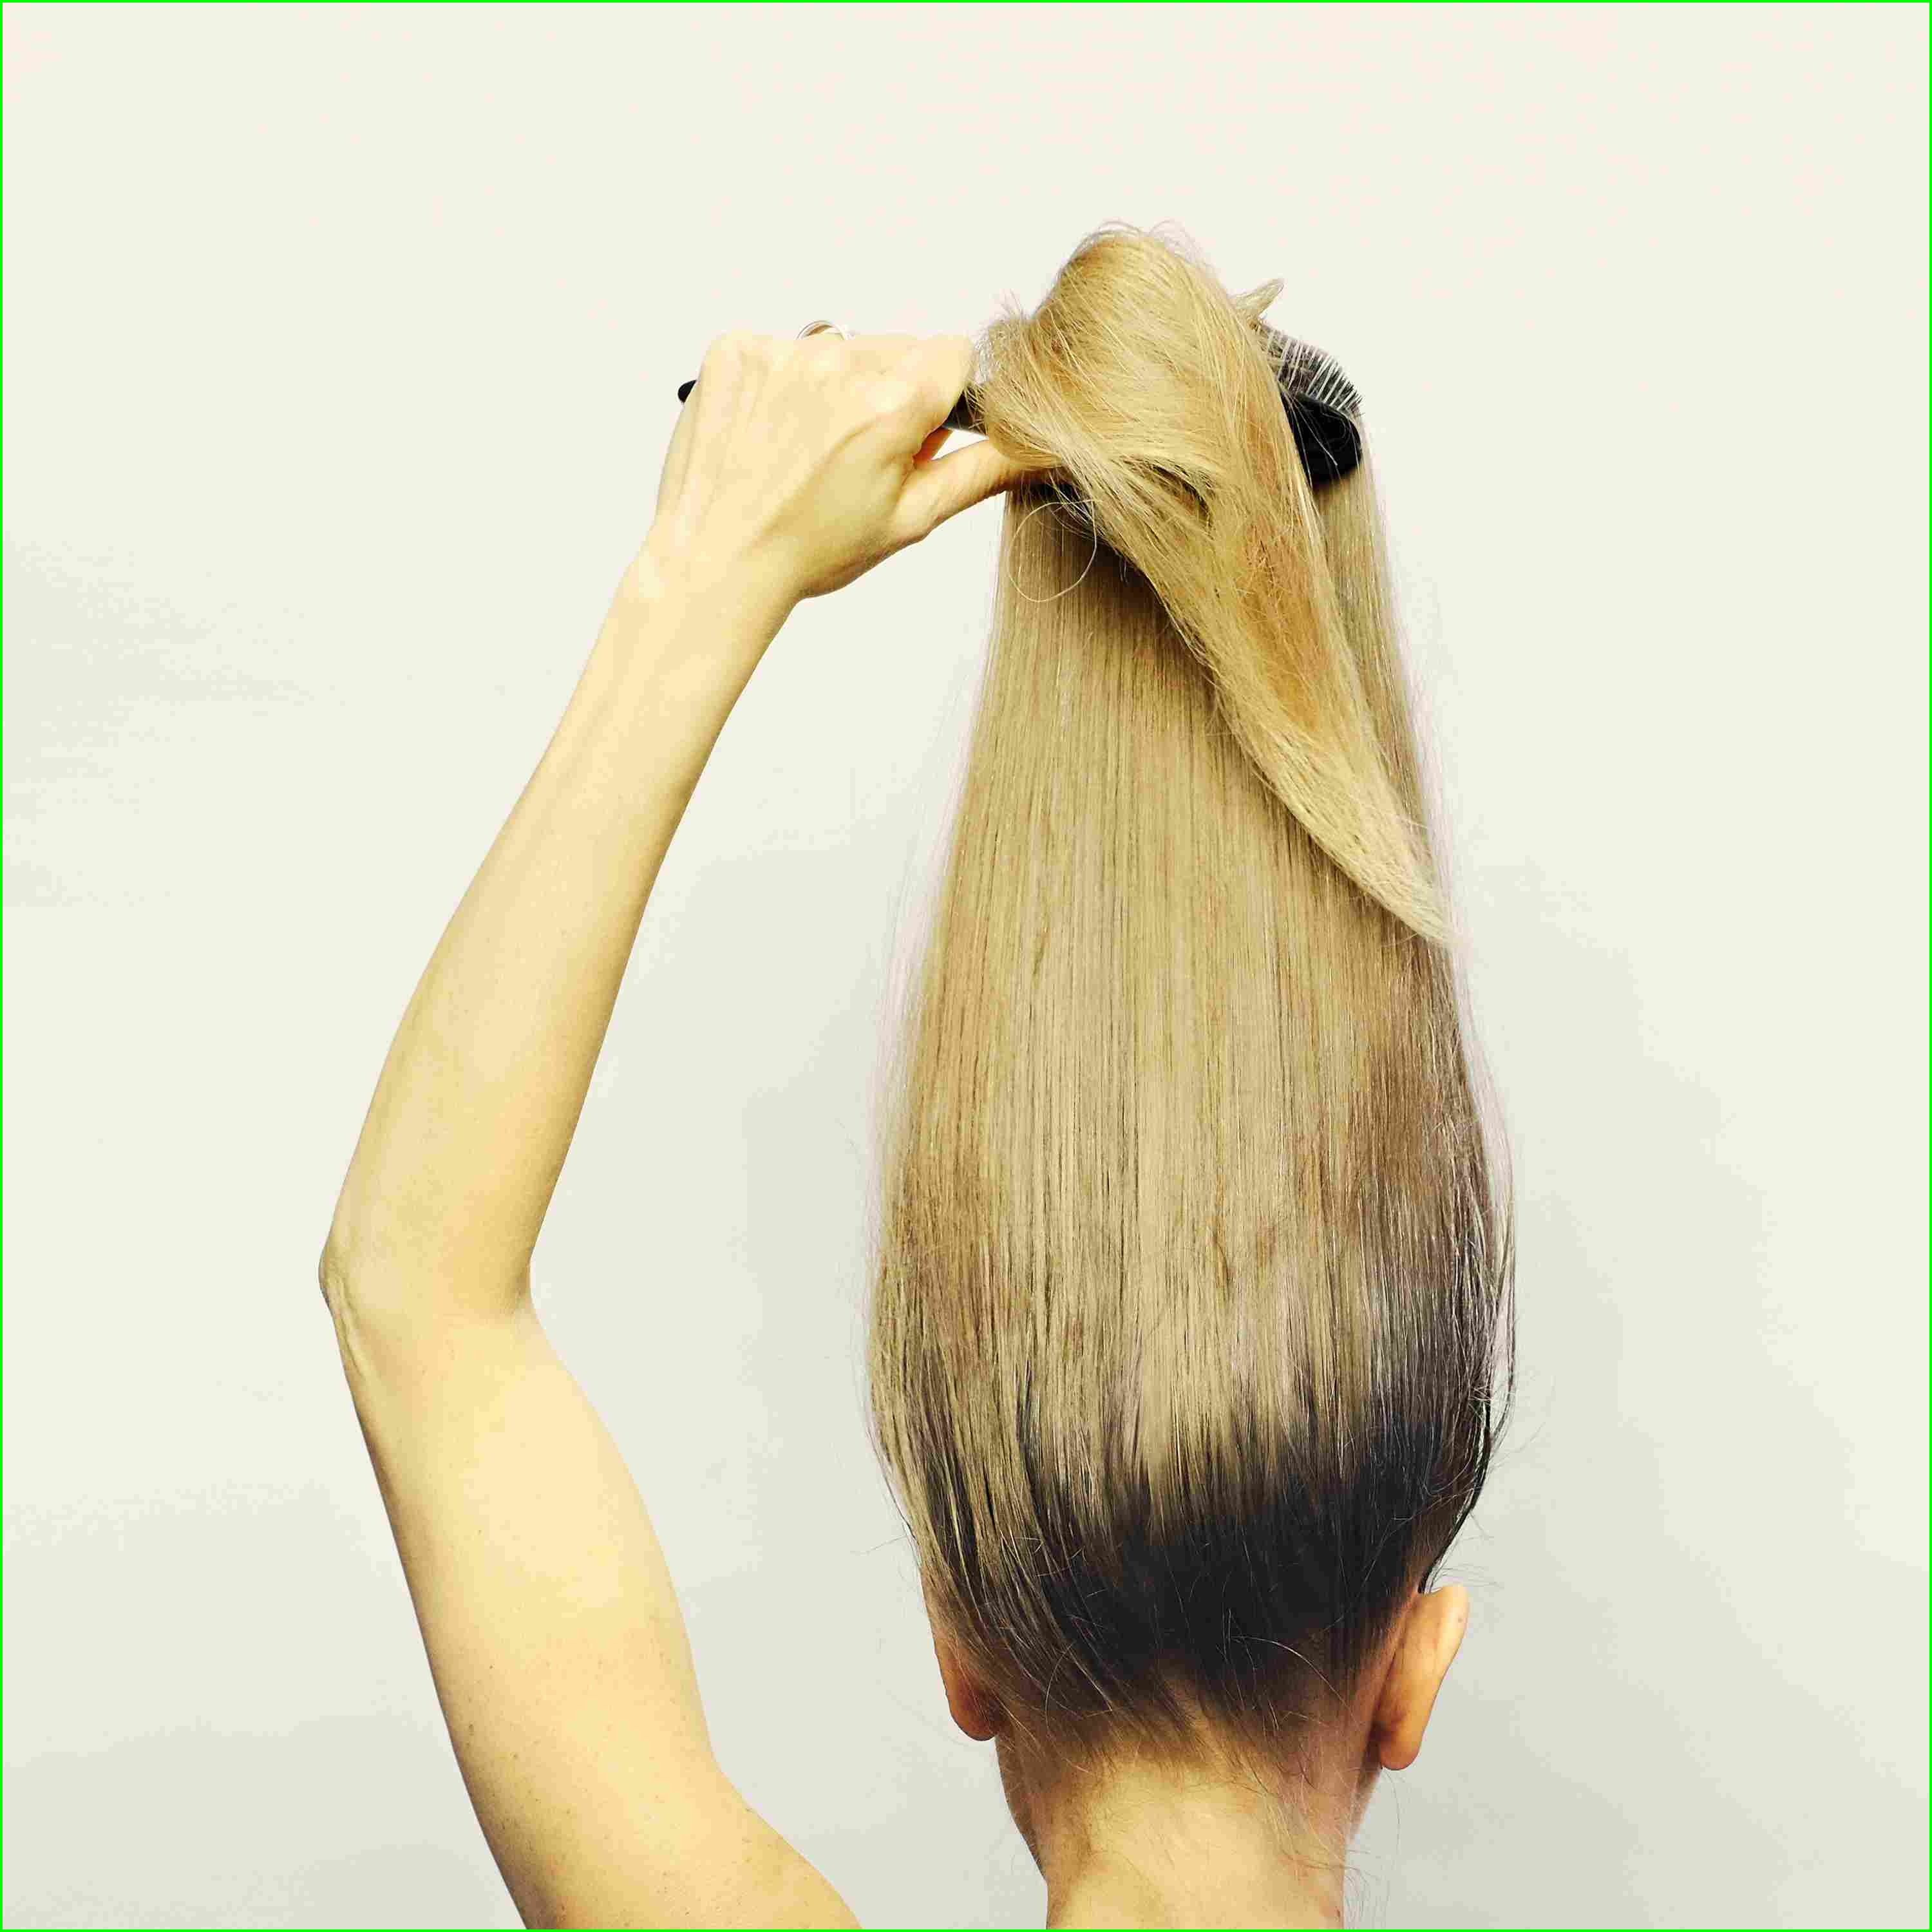 Styling Heads With Real Hair 739 How To Grow Out Your Natural Hair Color Natural Hair Color Natural Hair Styles Easy Hair Color